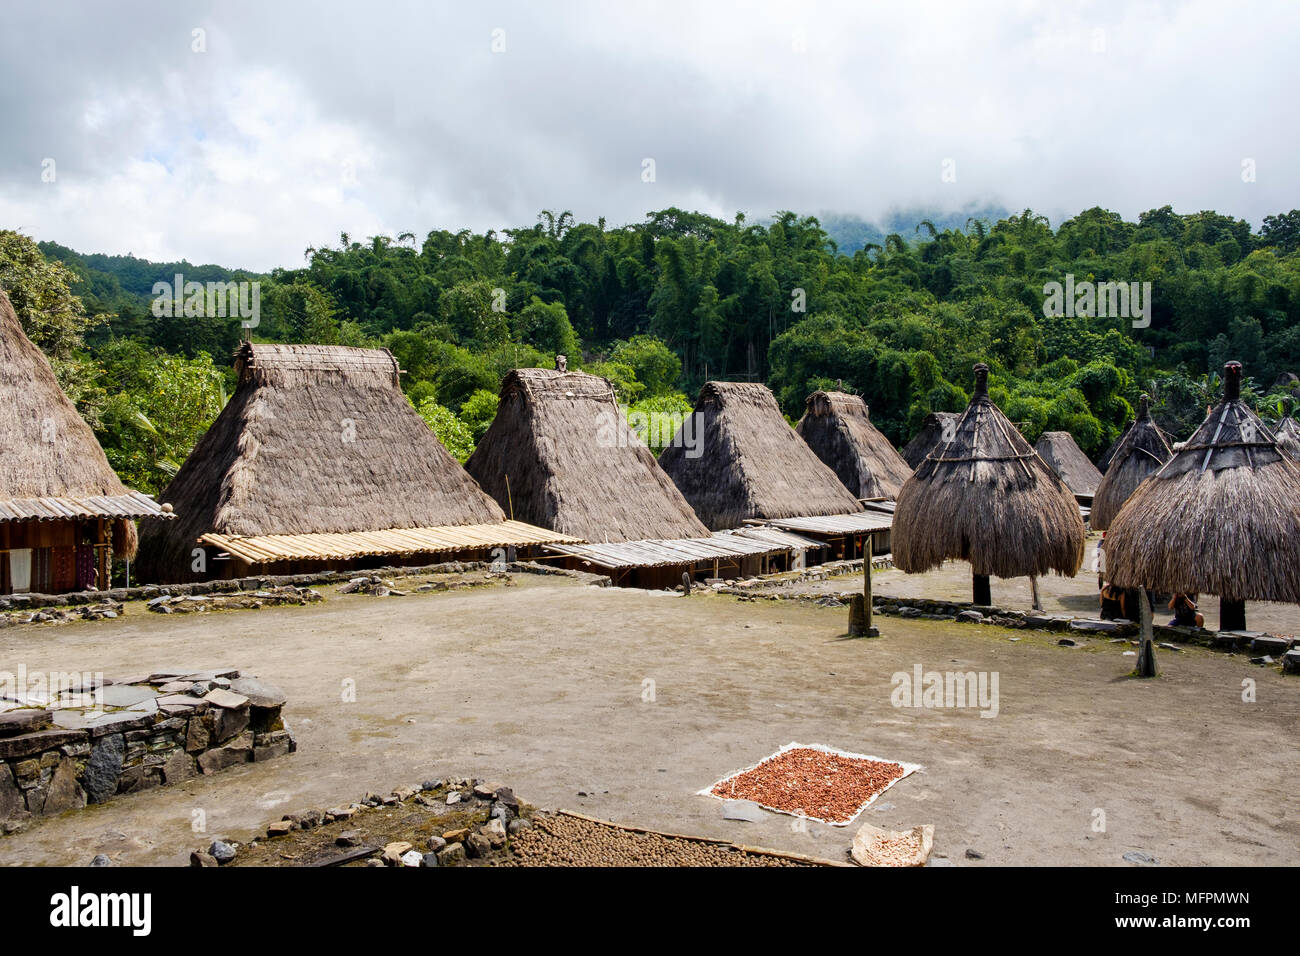 Center yard and houses at Bena traditional village, Ngada District, Island of Flores, Indonesia. - Stock Image